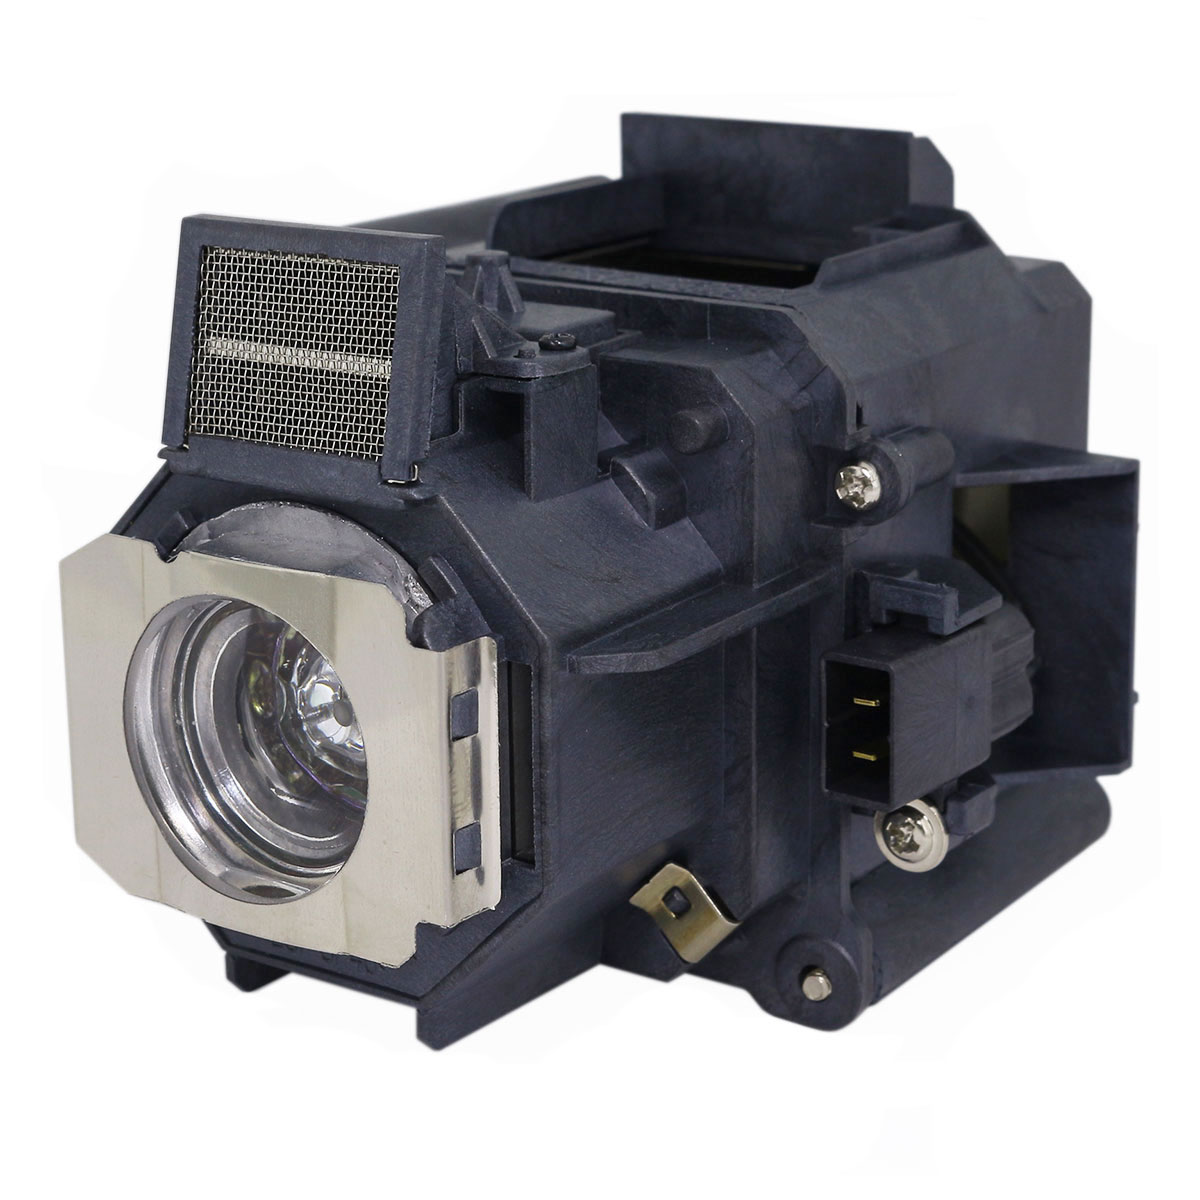 Projectorquest Epson Elplp62 Projector Lamp New Uhe